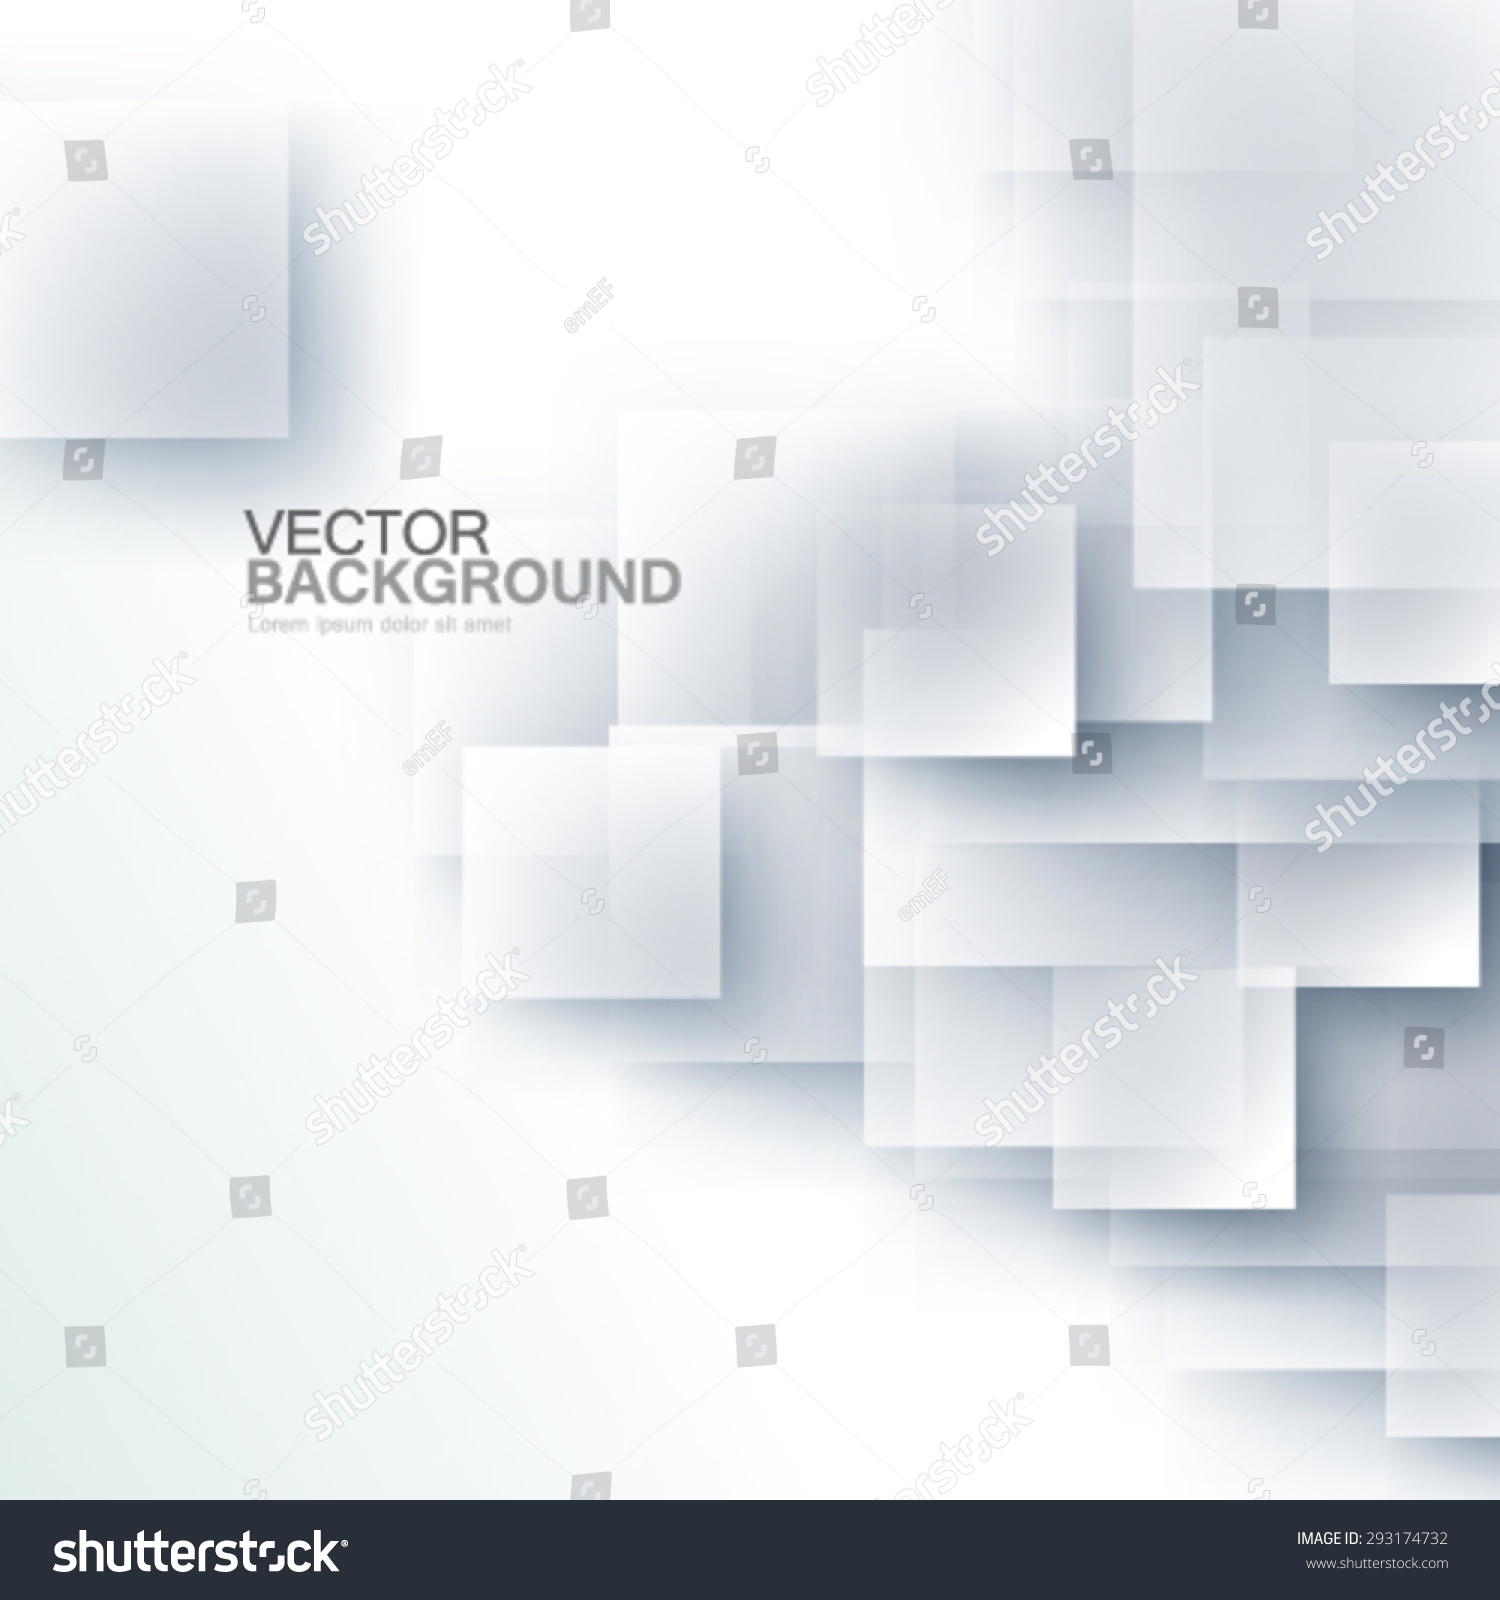 2 background images overlapping - Overlapping Squares Design Glass Effect Background